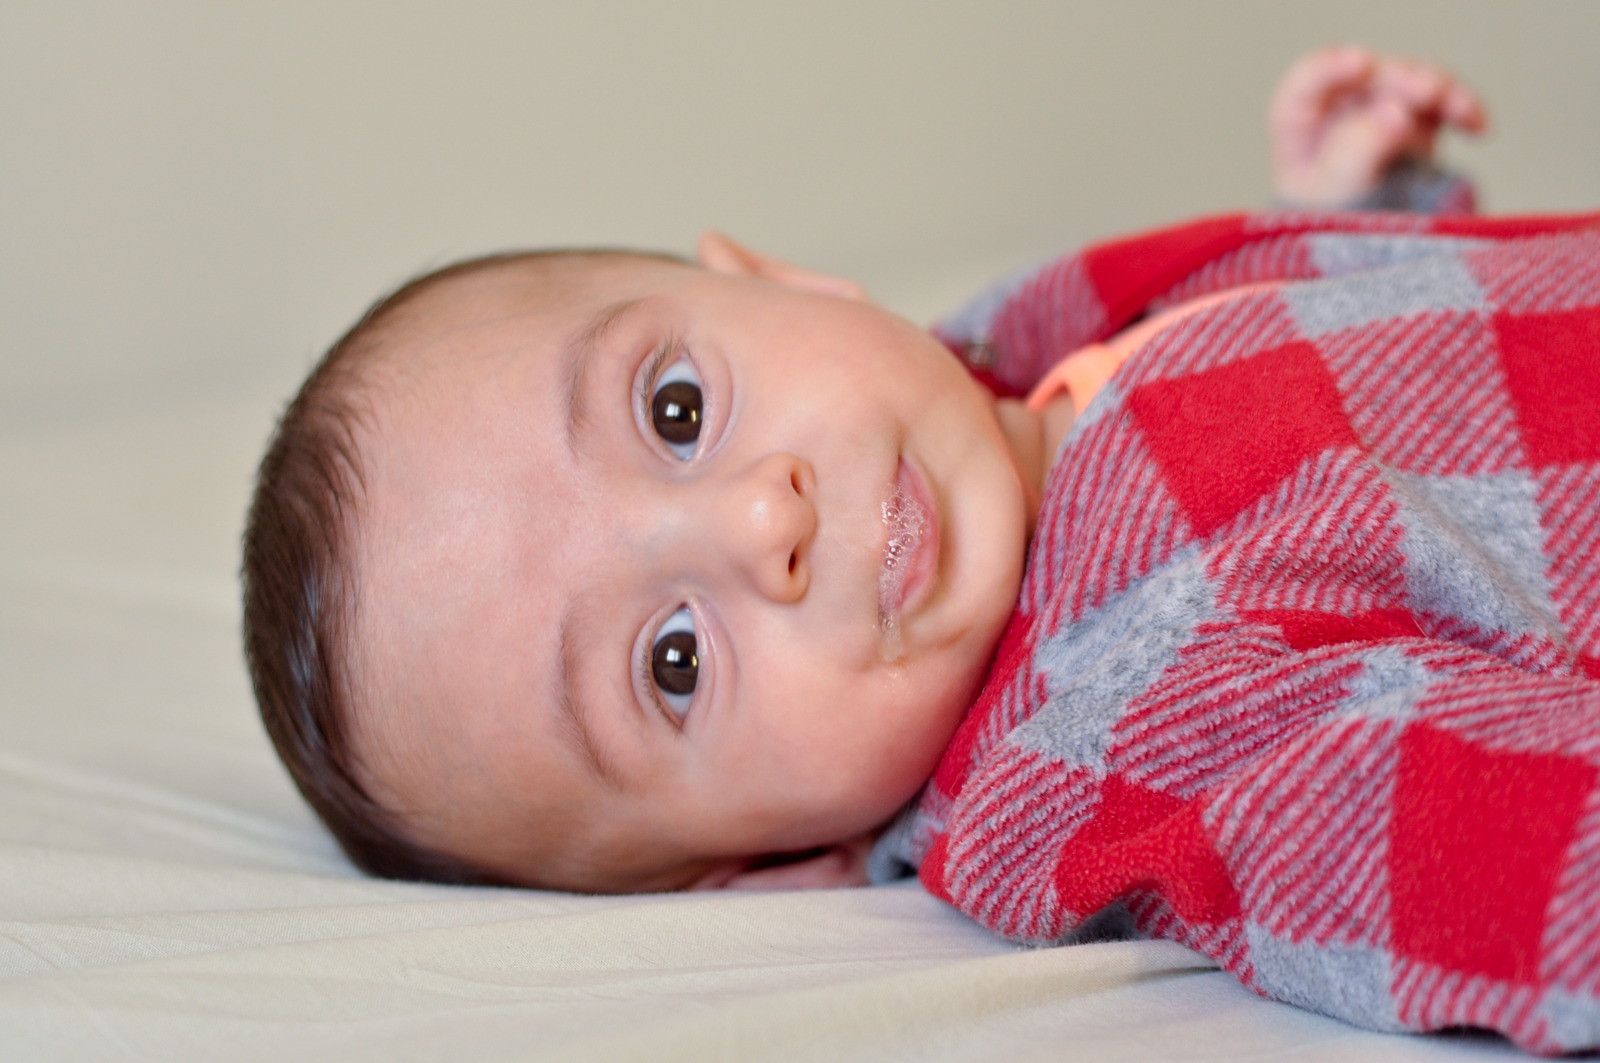 Why Do Babies Drool? Facts About Baby Saliva - SleepBaby.org